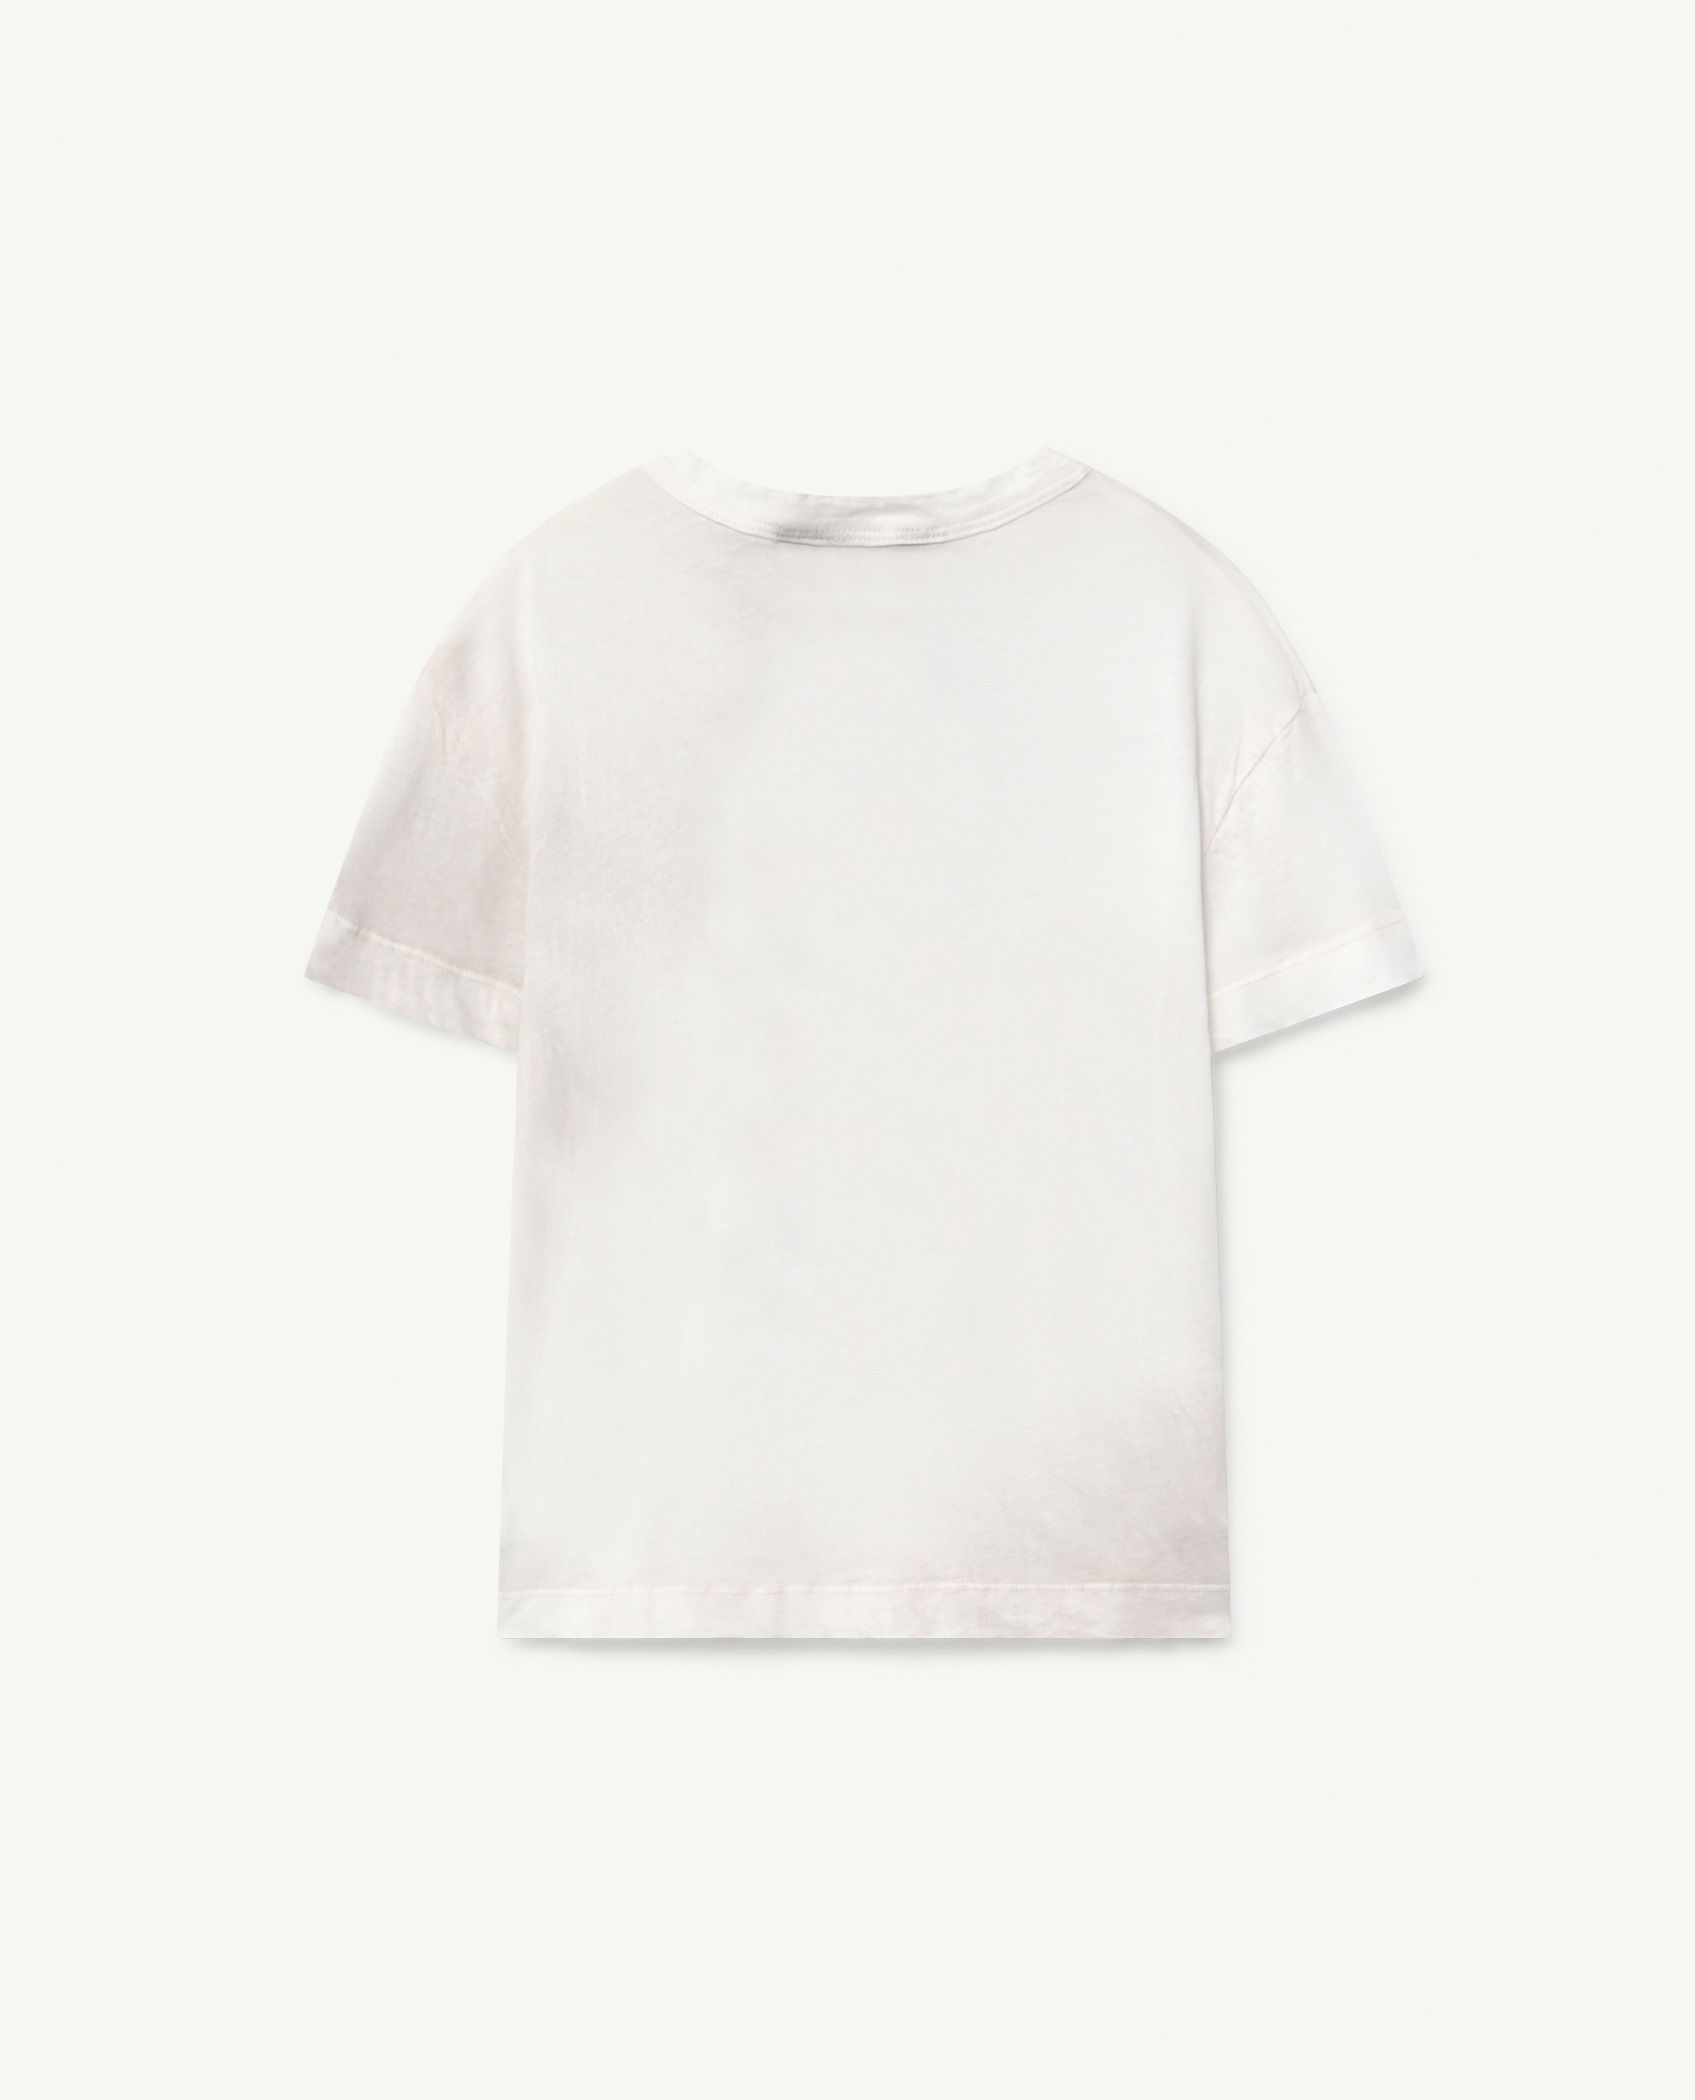 White Dog Rooster T-Shirt img-2